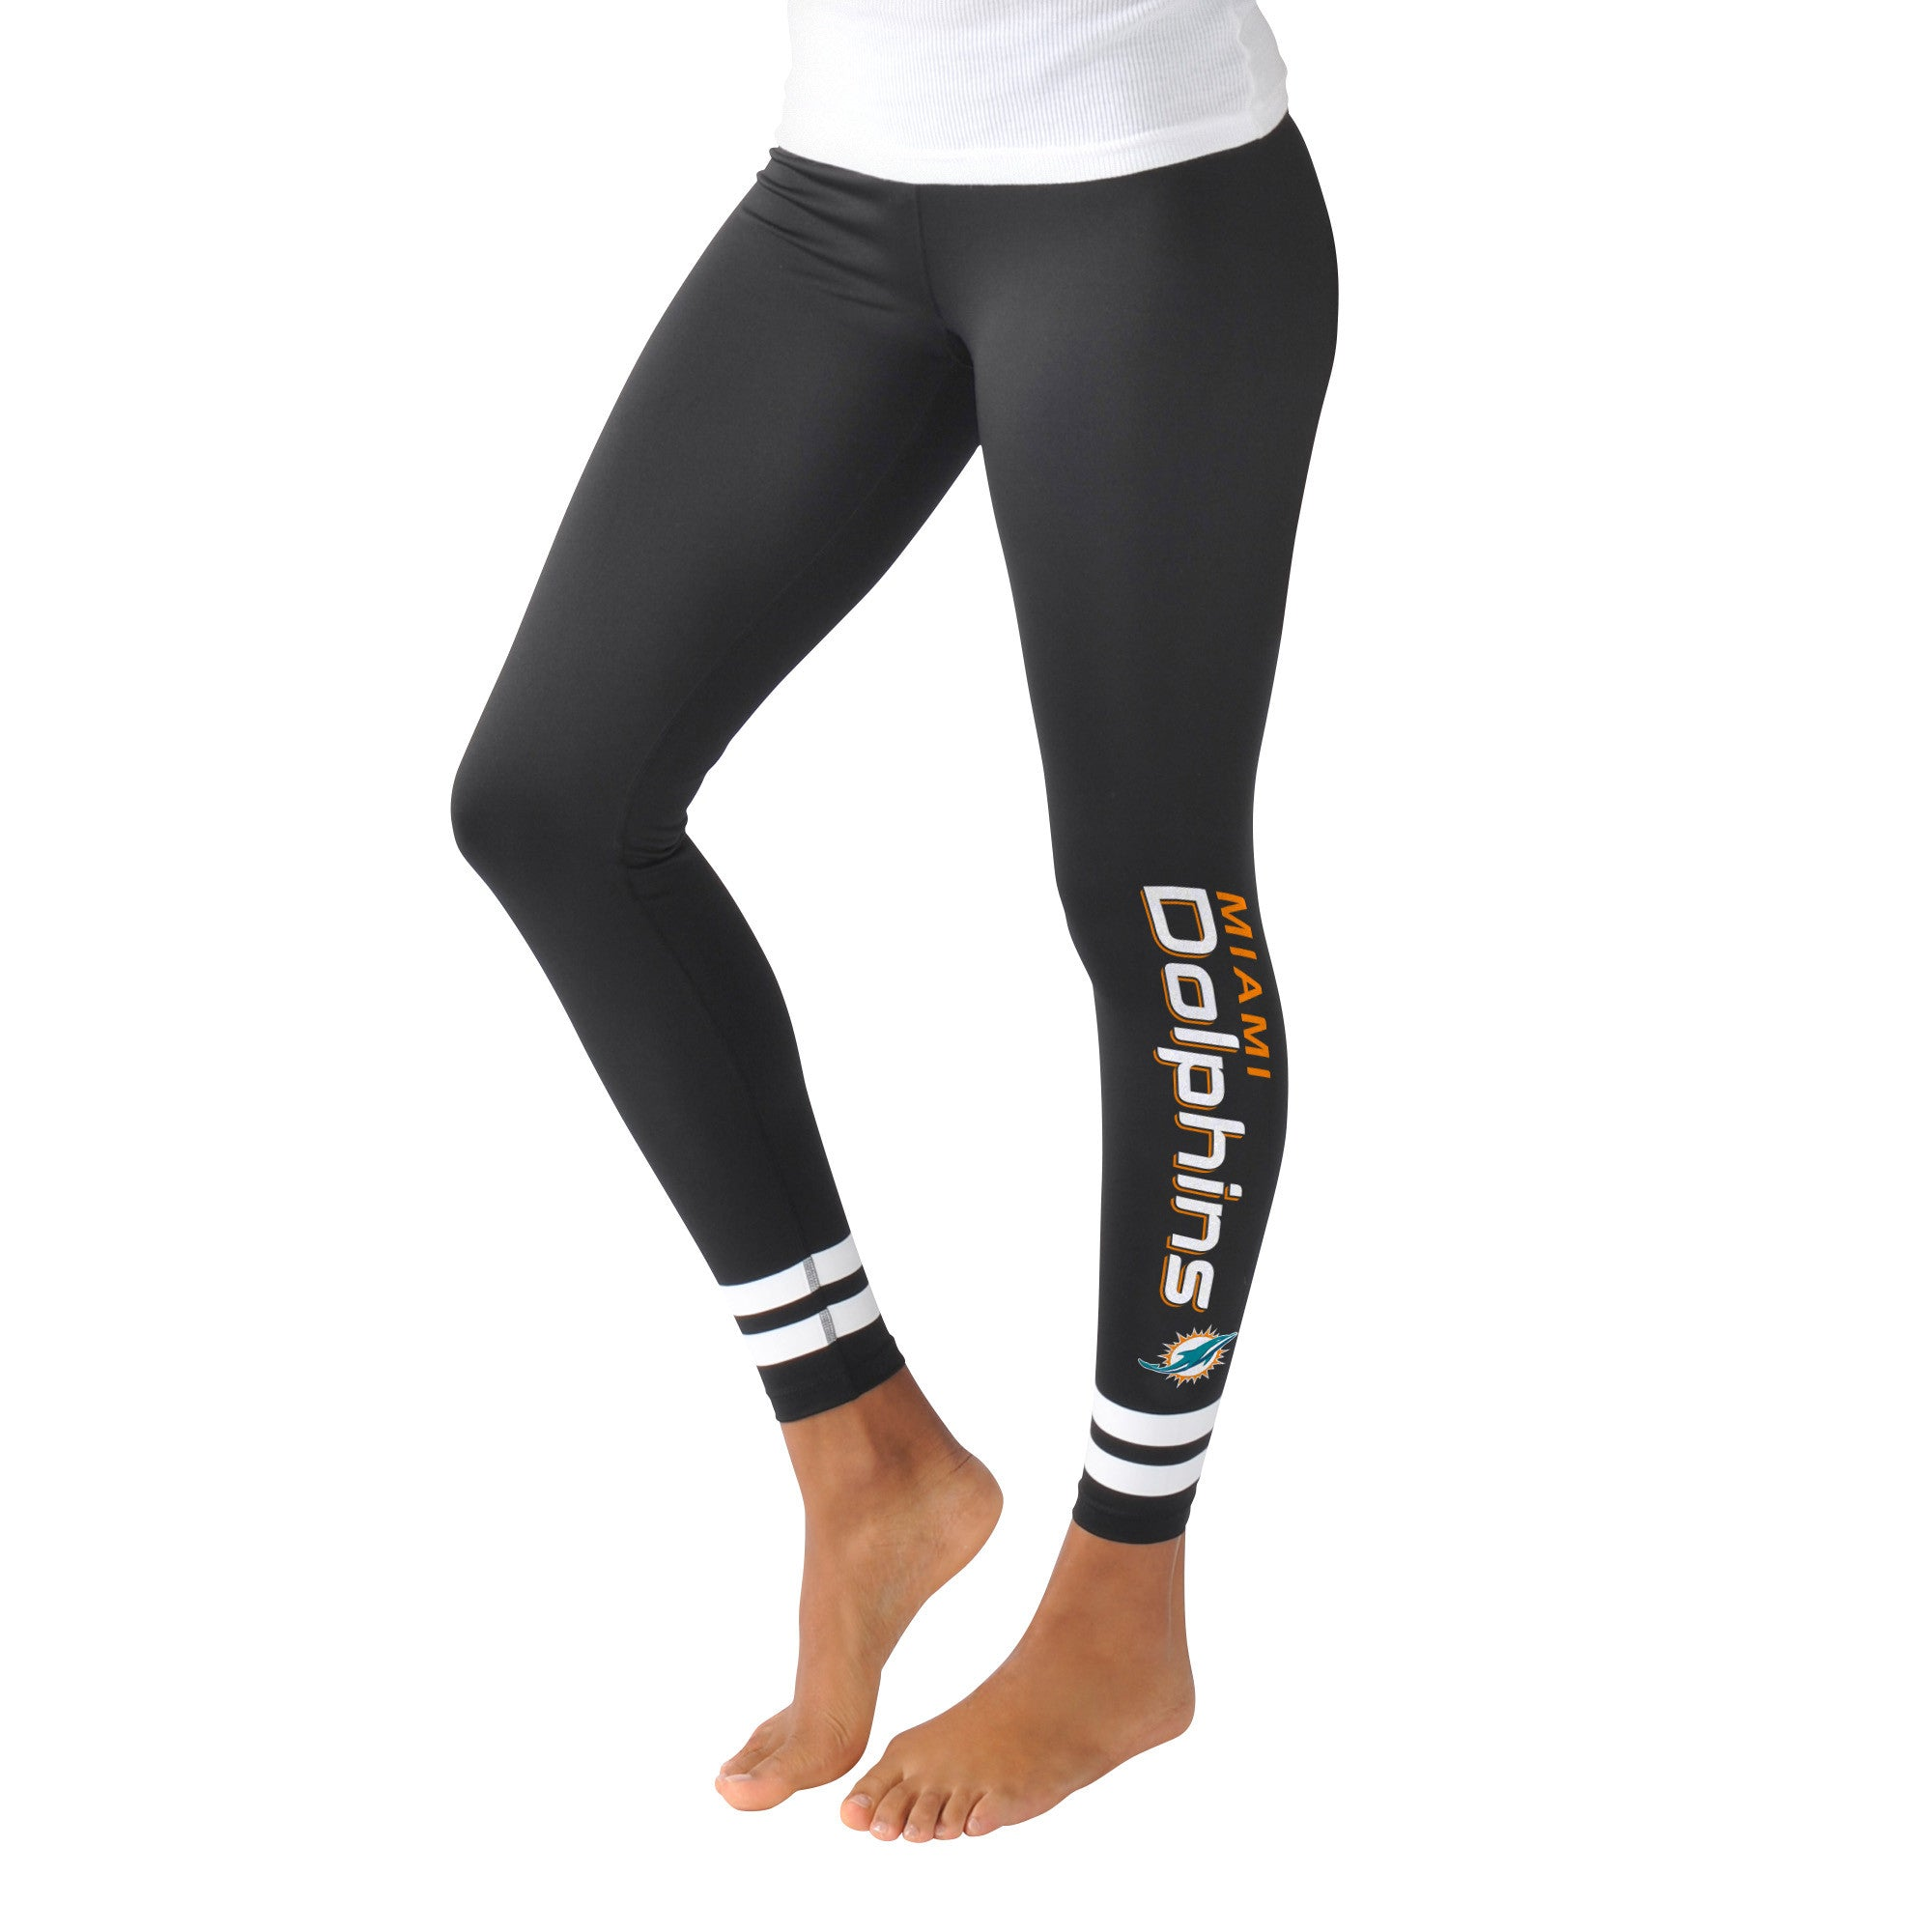 78a47236 Miami Dolphins Women's Leggings